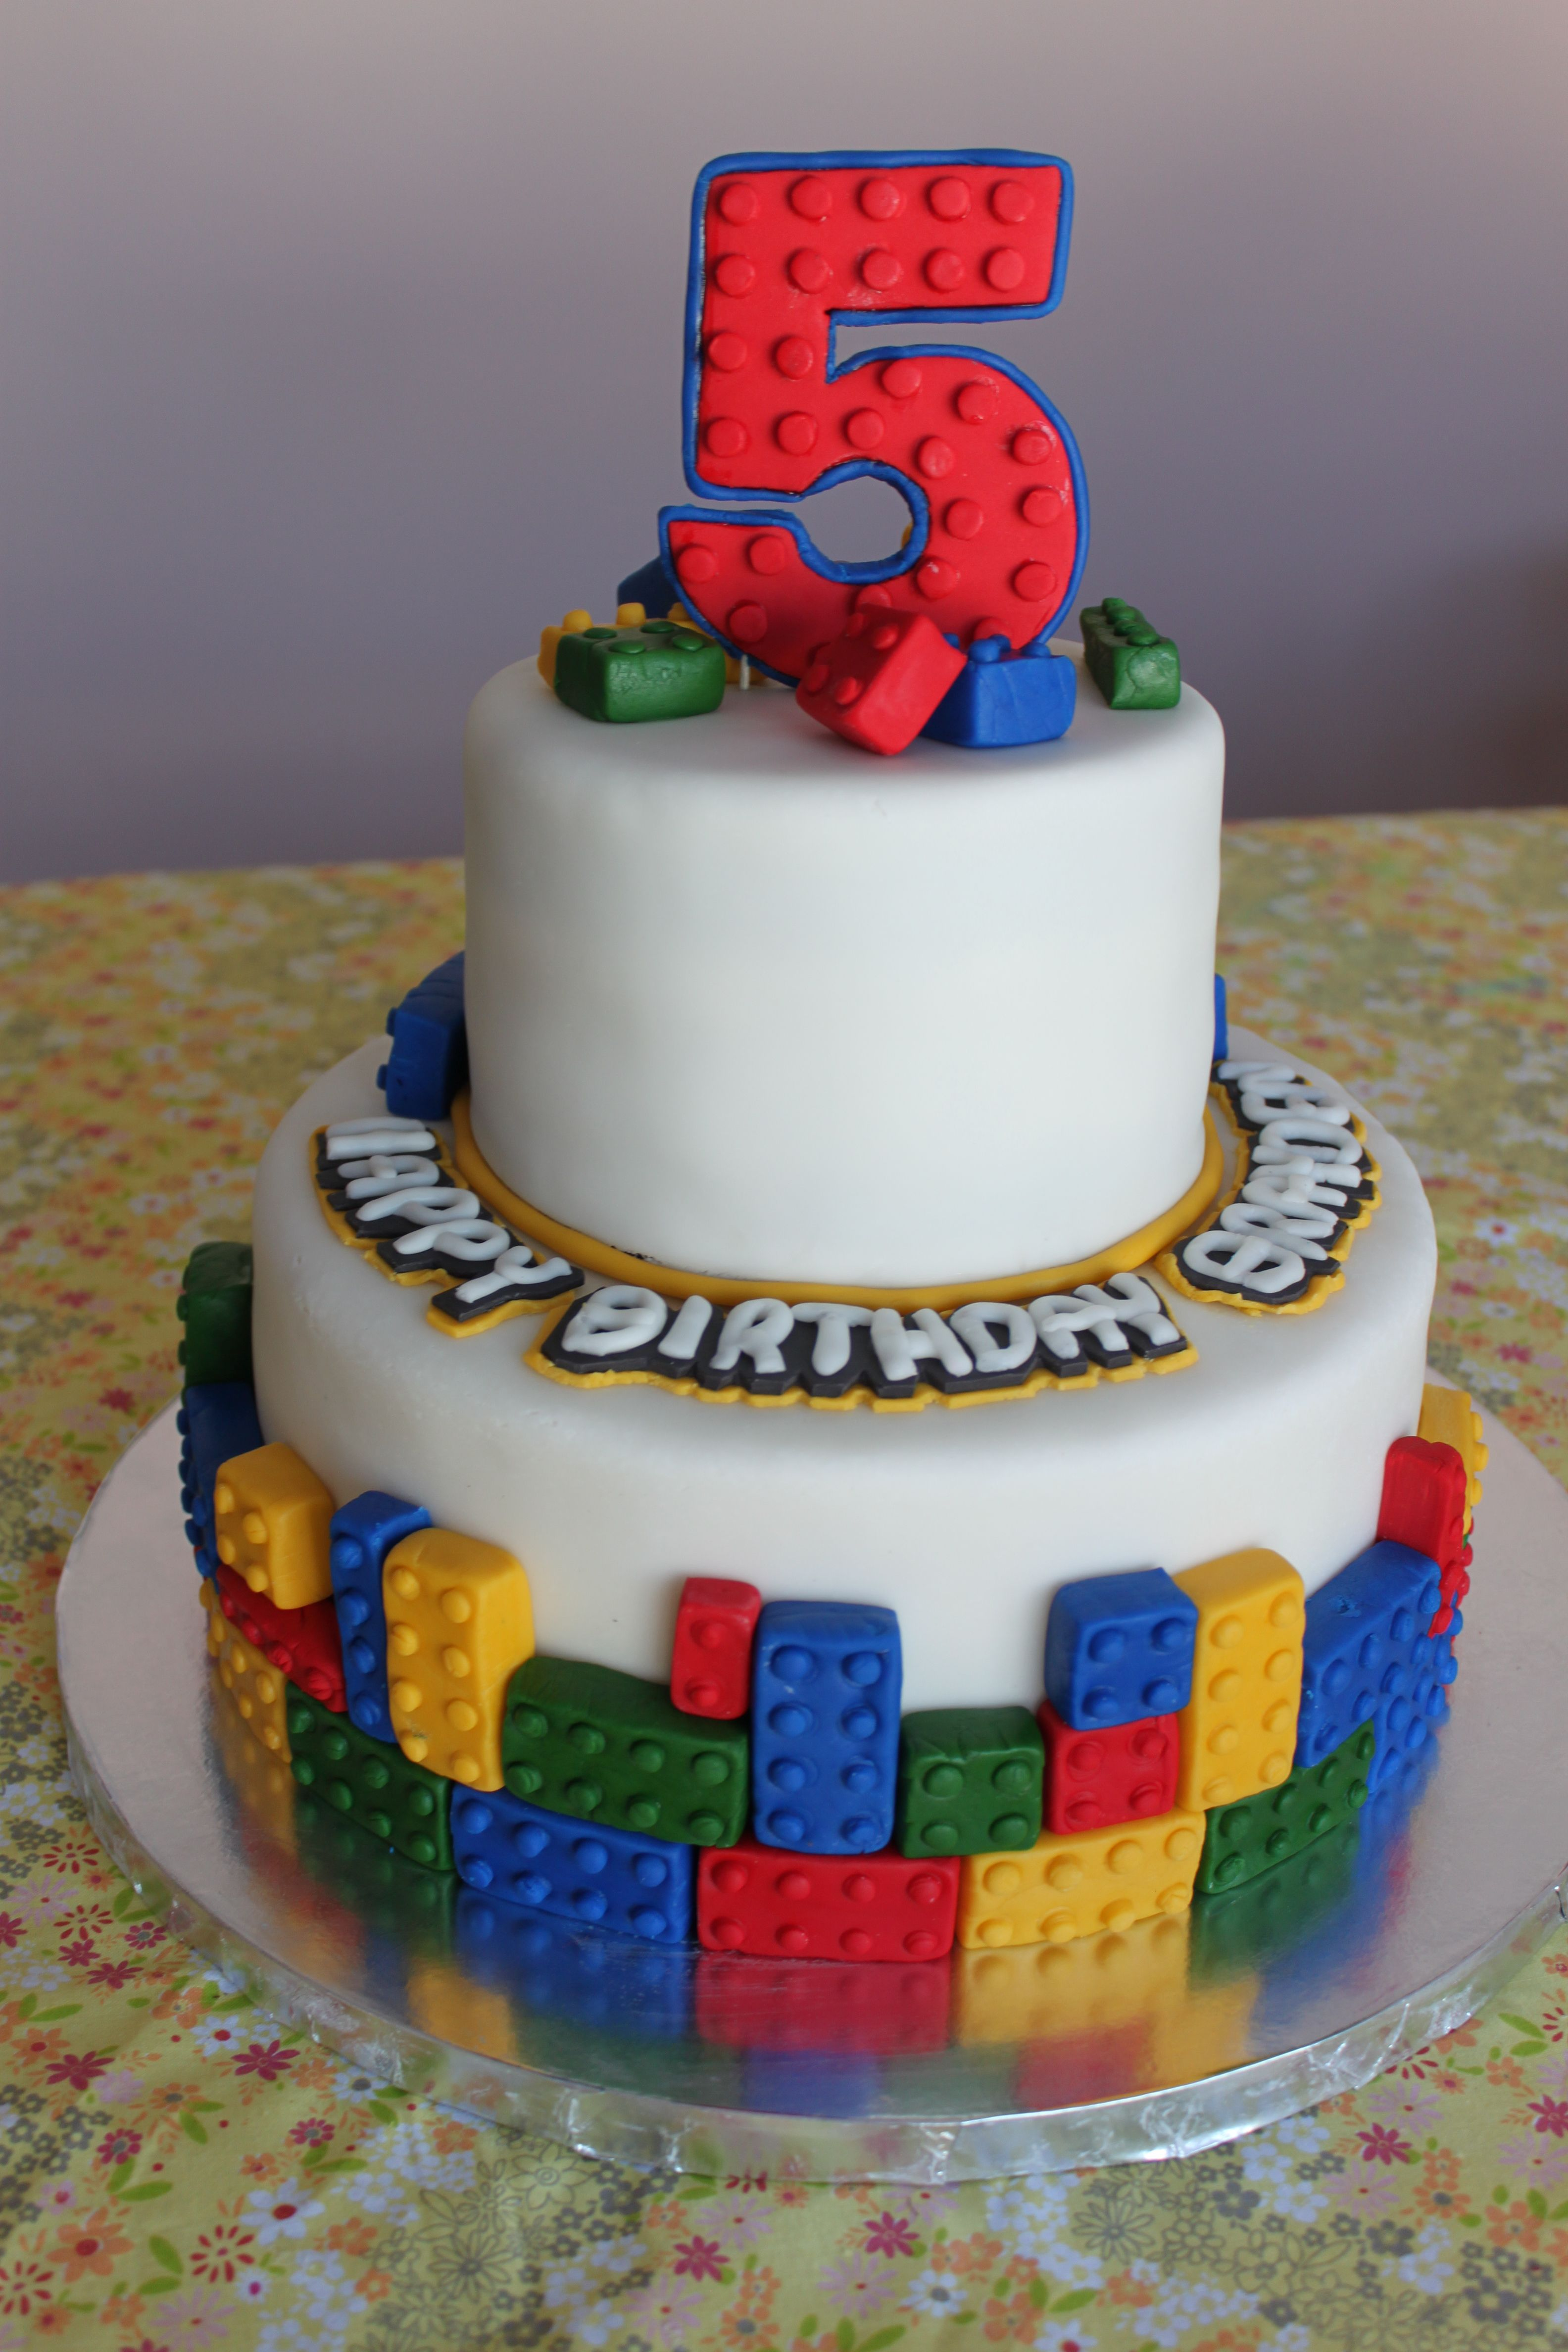 10 Lego birthday cakes that will blow your mind Lego Bricks